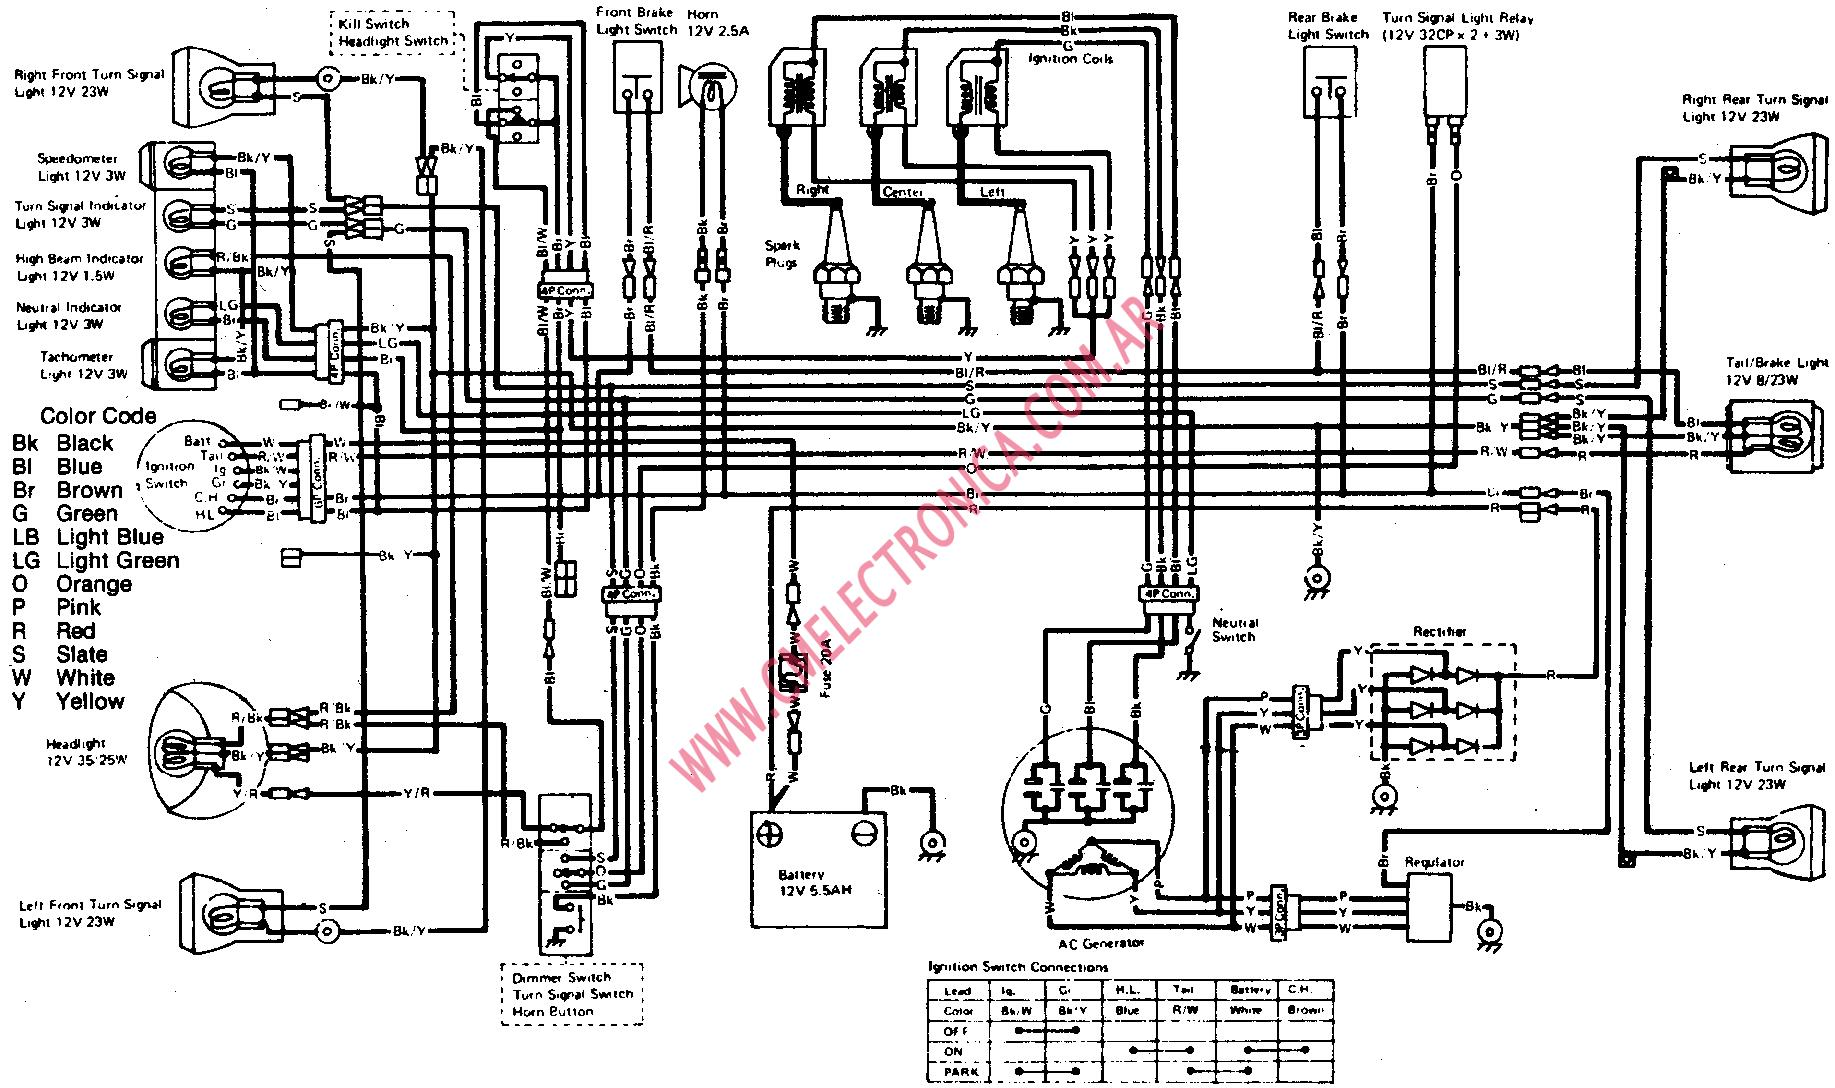 klf 300 wiring diagram pioneer avh animated backgrounds free kawasaki 400 bayou get image